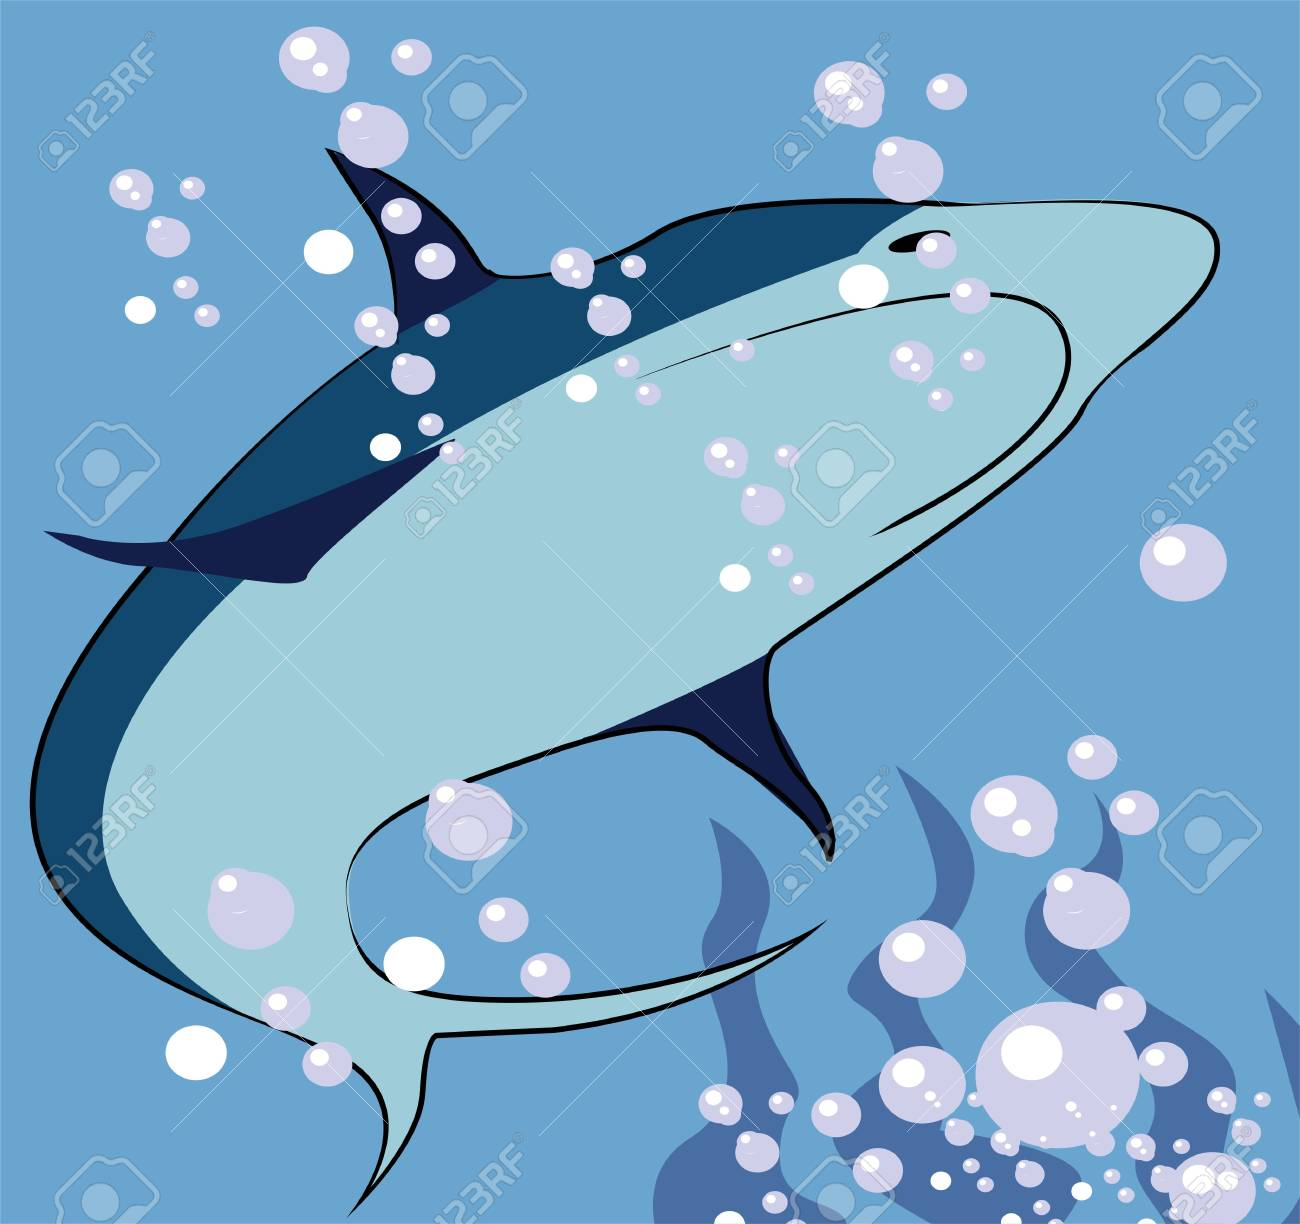 Illustration of a silhouette of a shark underwater Stock Illustration - 3423421